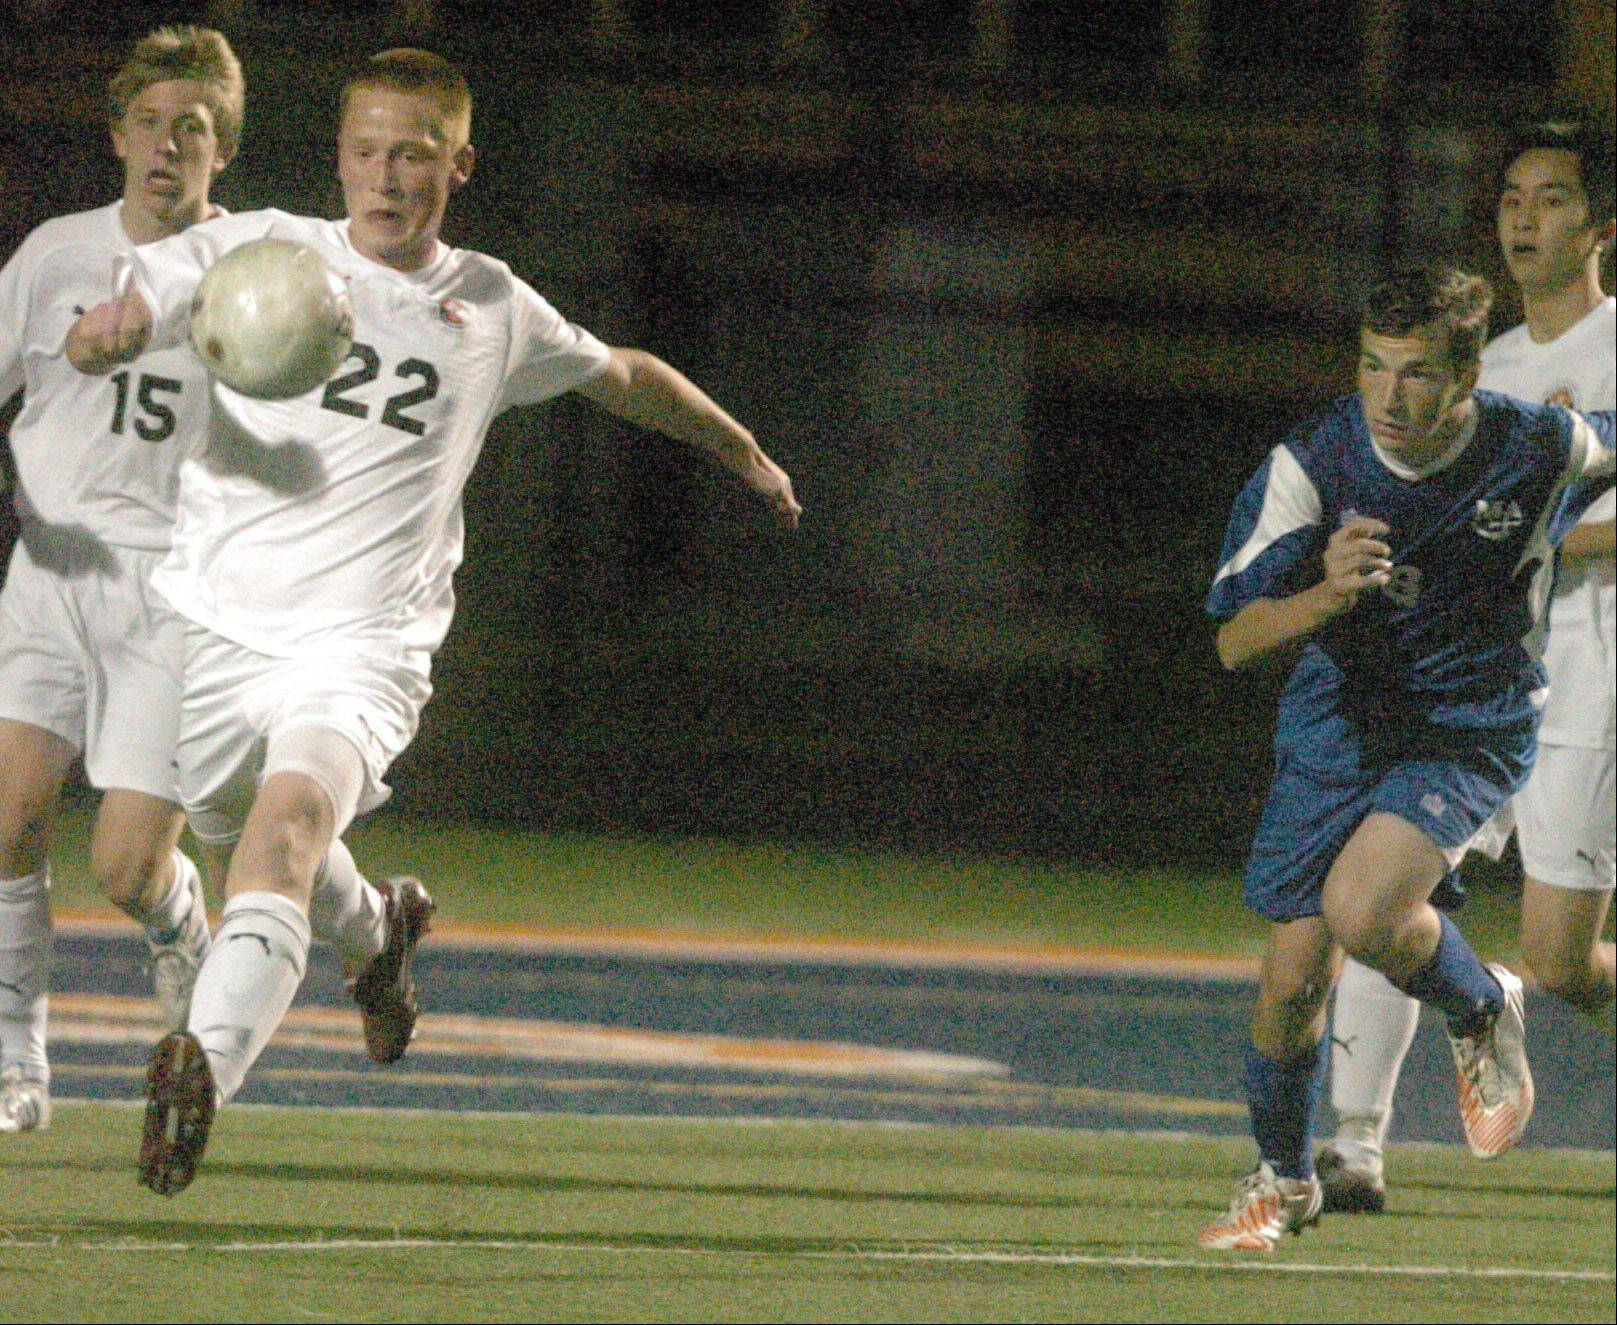 Mitchell Cin of Wheaton Warrenville is chased by Marmion defenders during the Wheaton Warrenville South vs. Marmion game at Naperville North Tuesday.